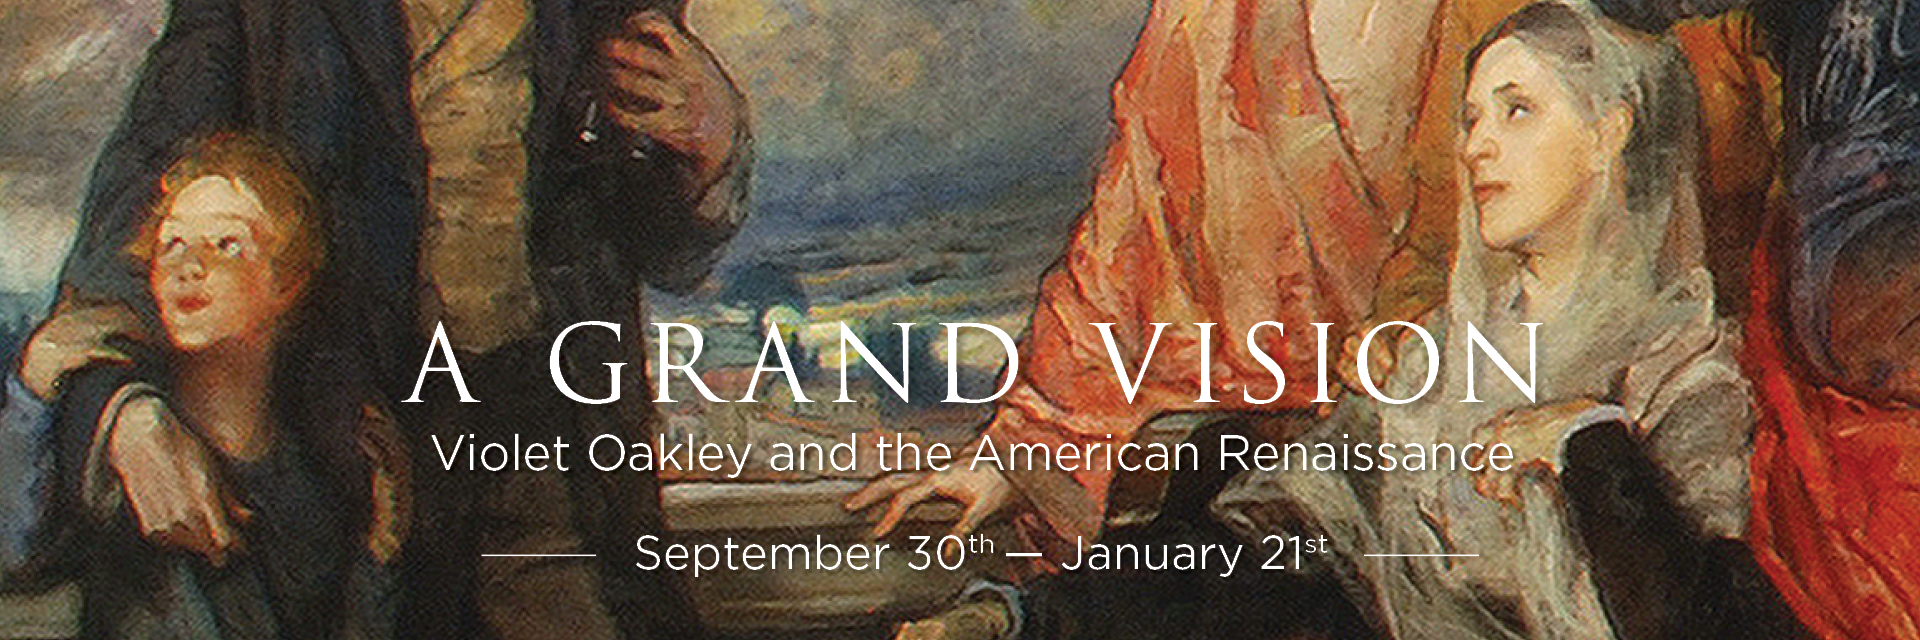 A Grand Vision: Violet Oakley and the American Renaissance